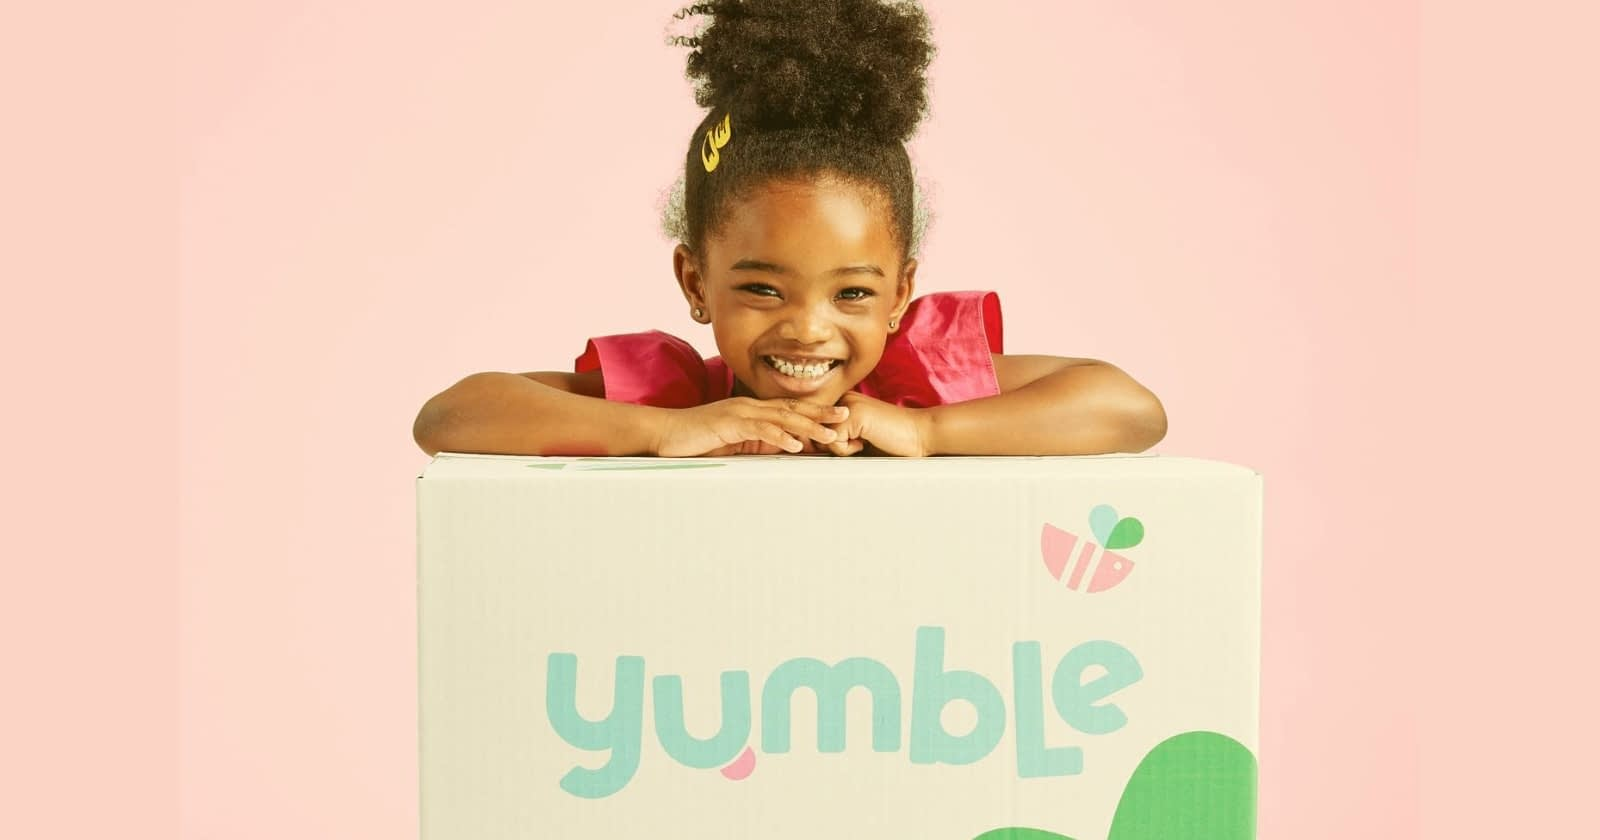 featured image - yumble kids review article